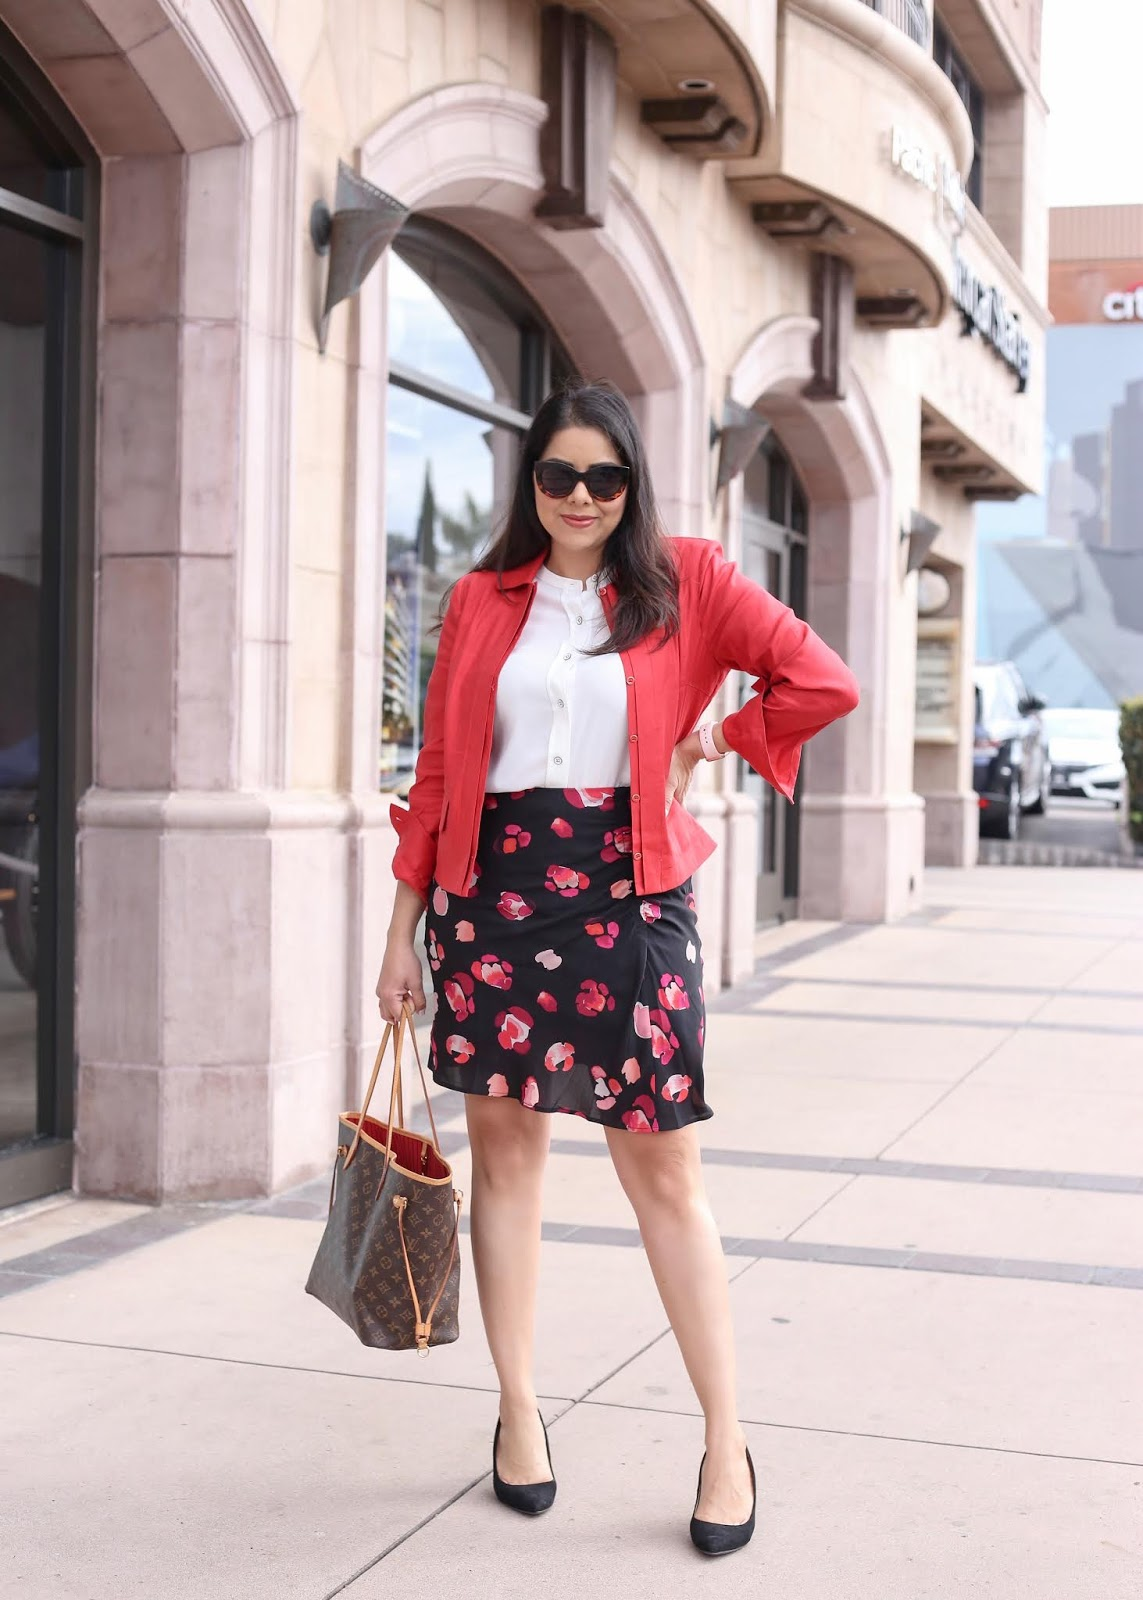 career outfits 2019, what to wear to work in spring